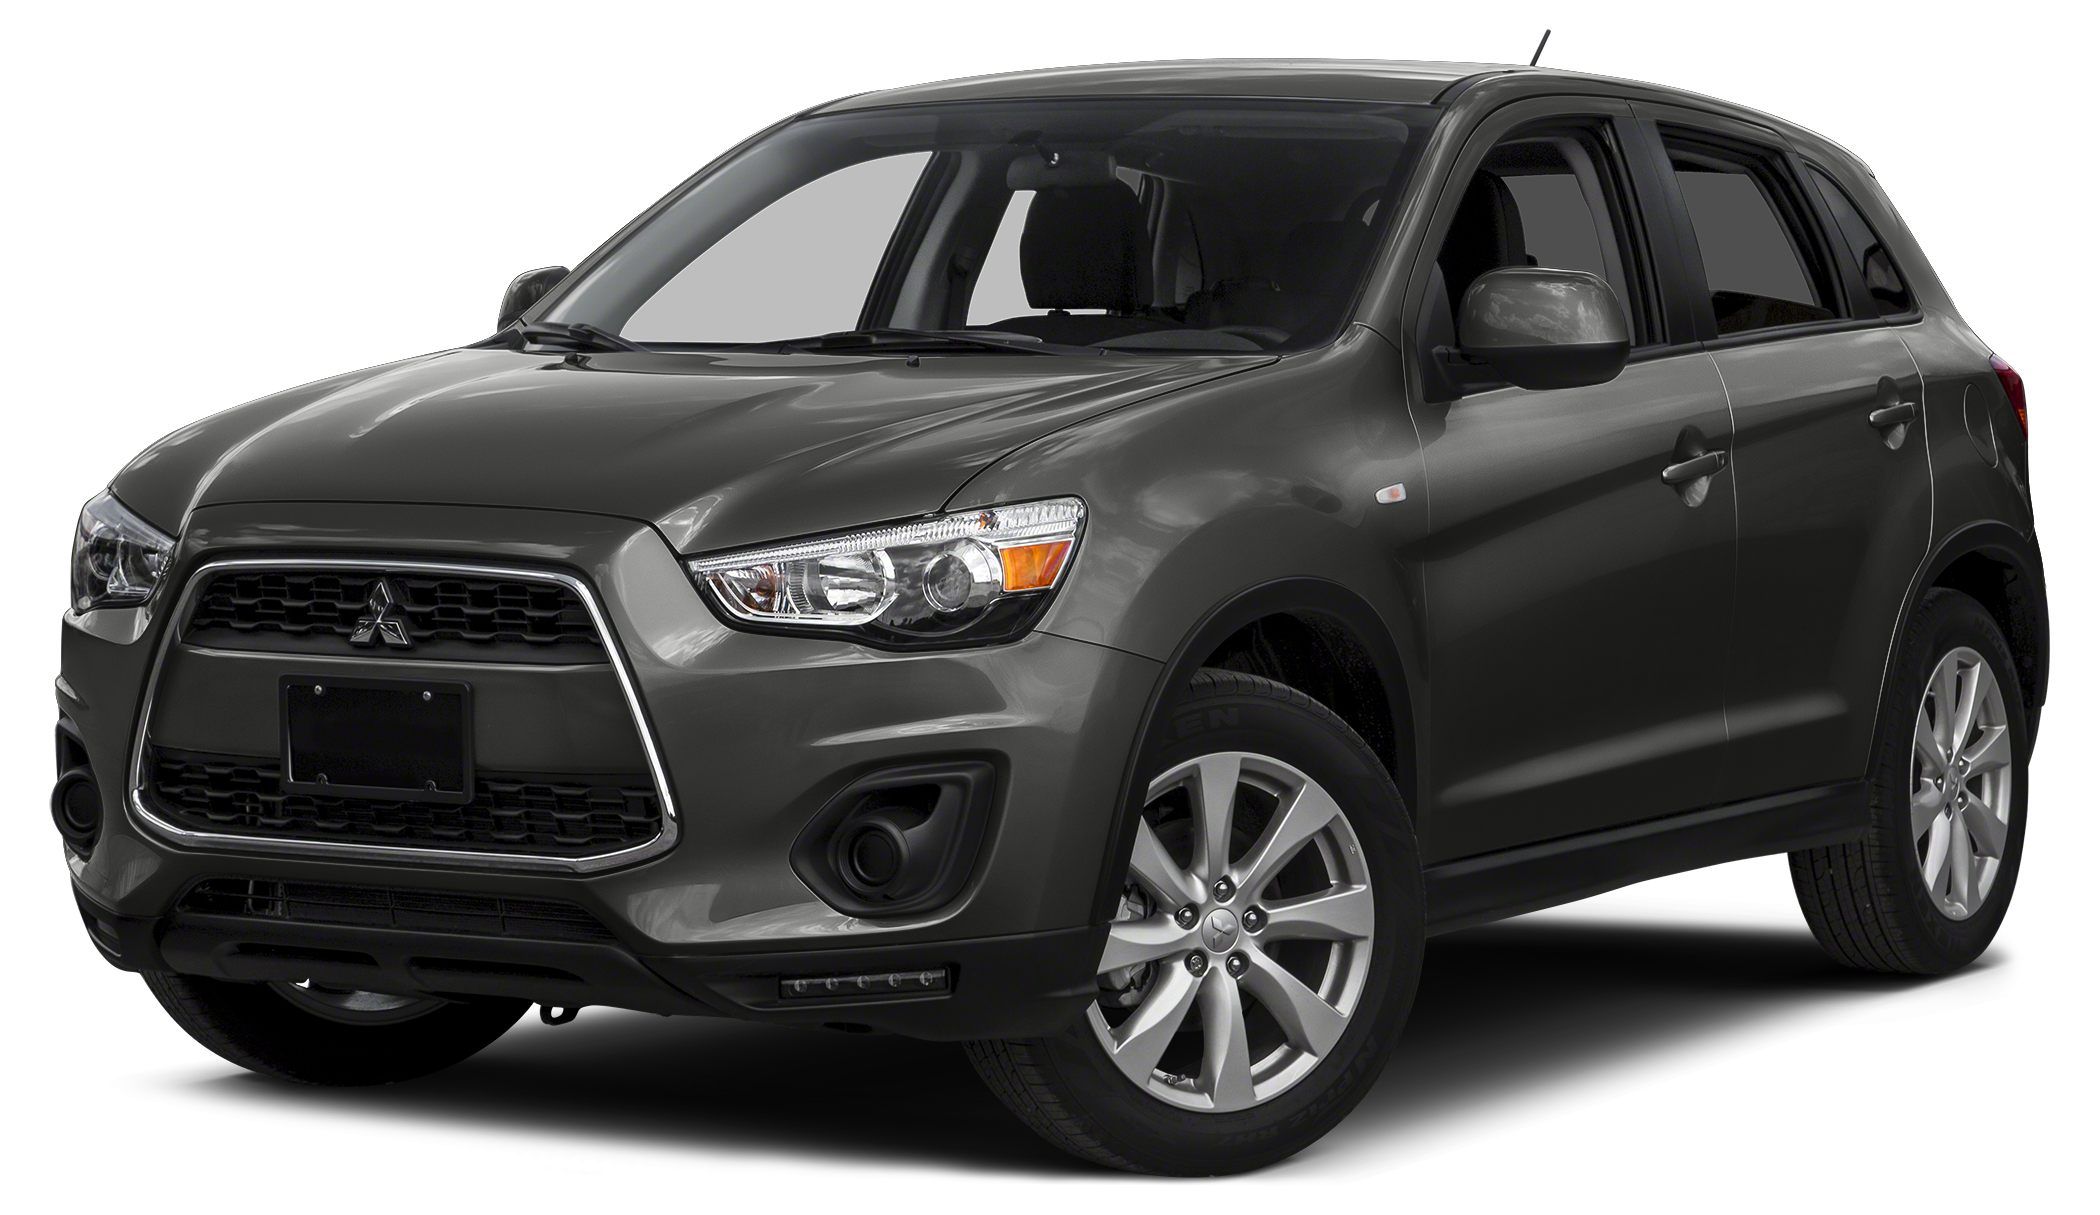 2015 Mitsubishi Outlander Sport ES Price is listed after all applicable rebates on PURCHASE or LEA